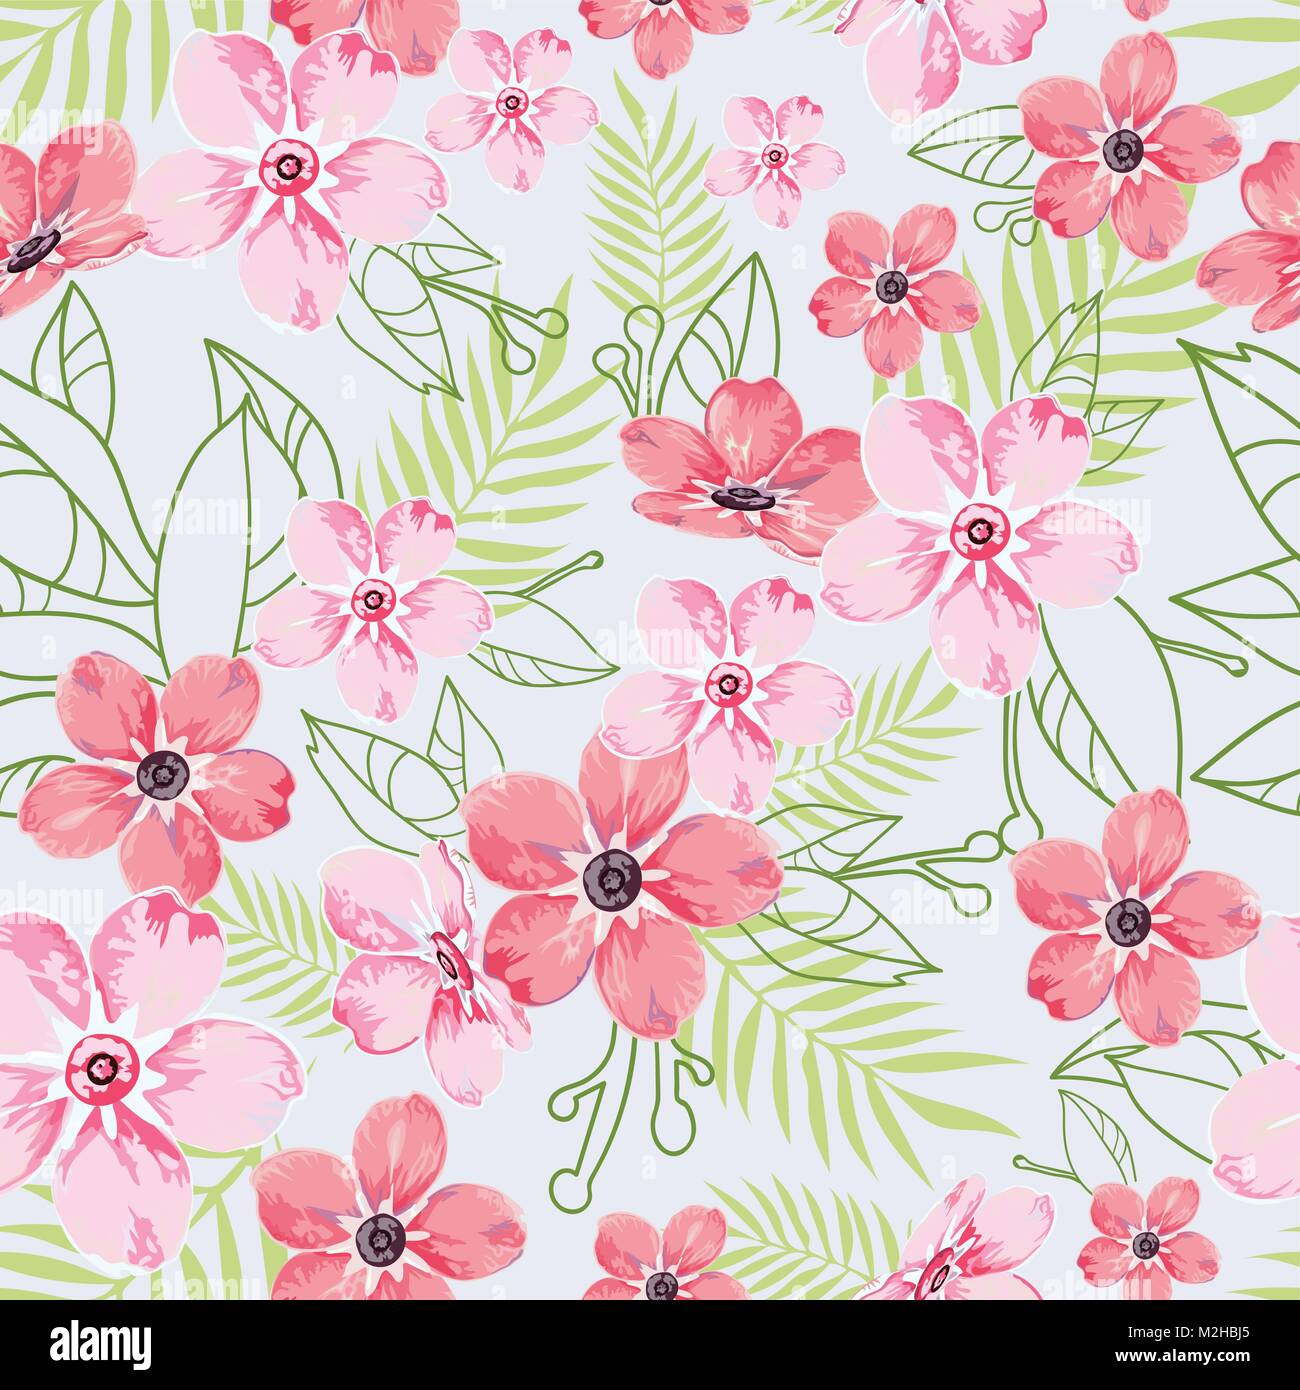 Seamless Floral Pattern Background In Light Blue With Pink